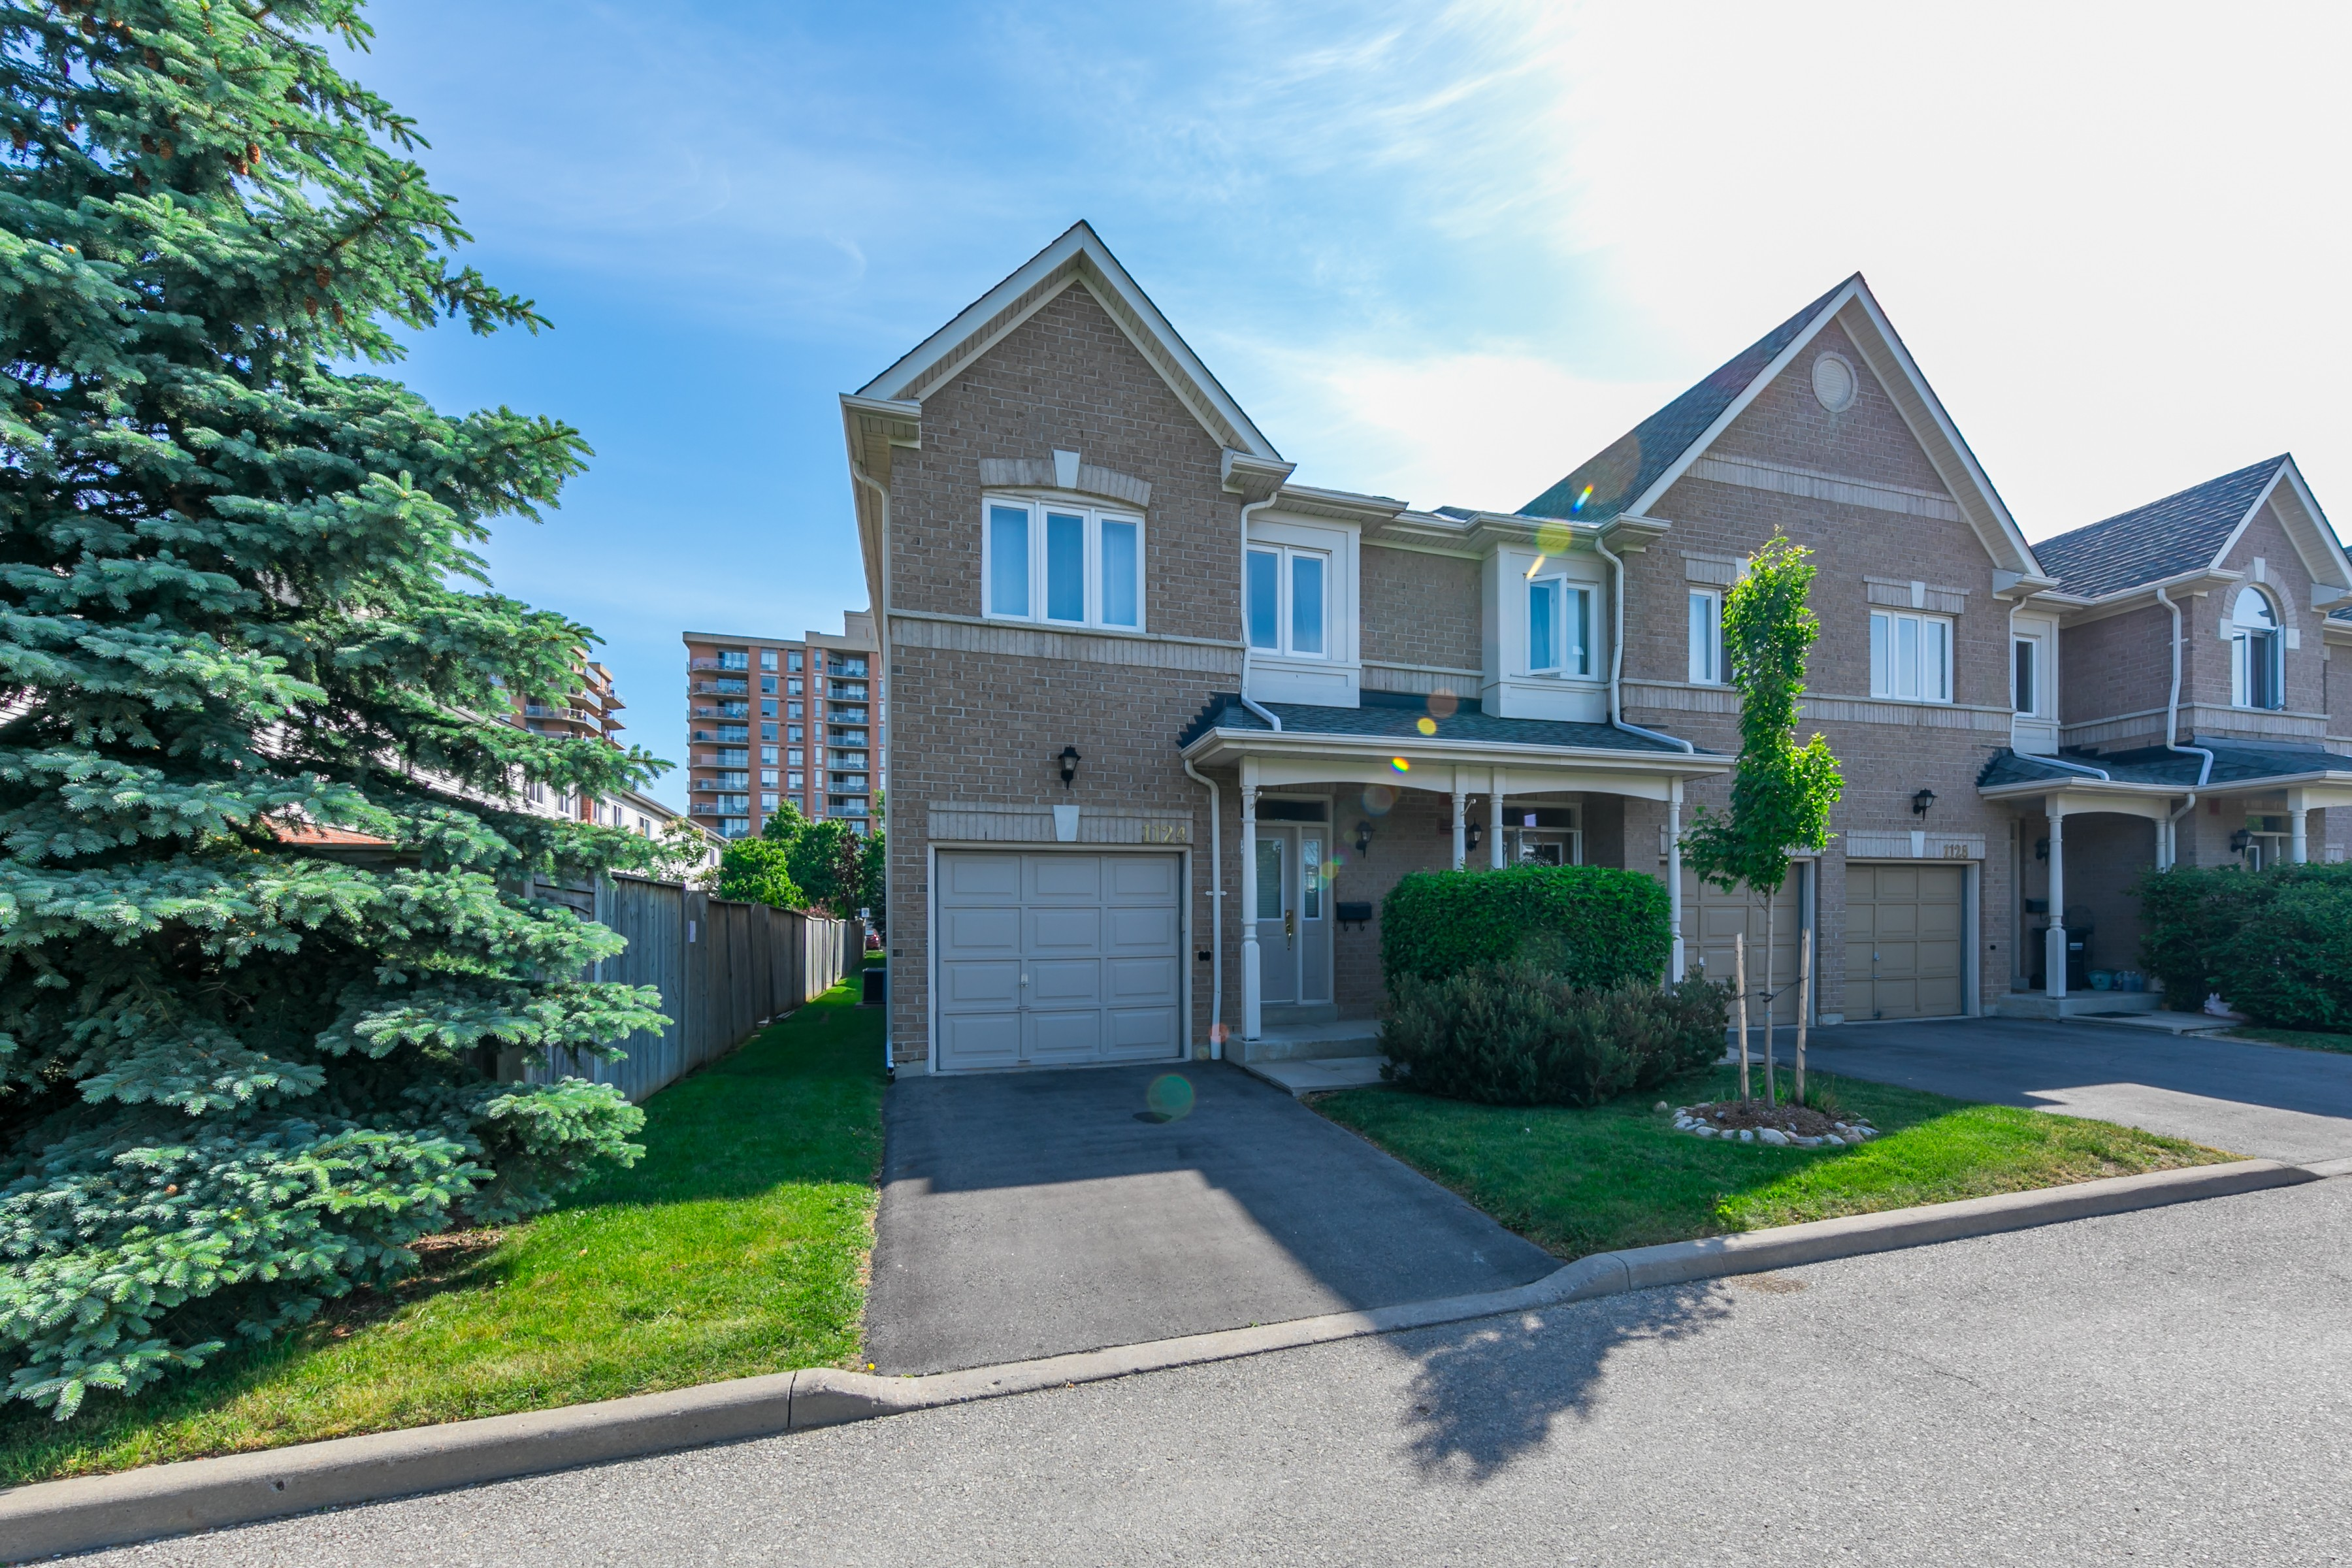 1103 Lower Village Crescent Townhouses at 1183 Lower Village Crescent, Mississauga 1